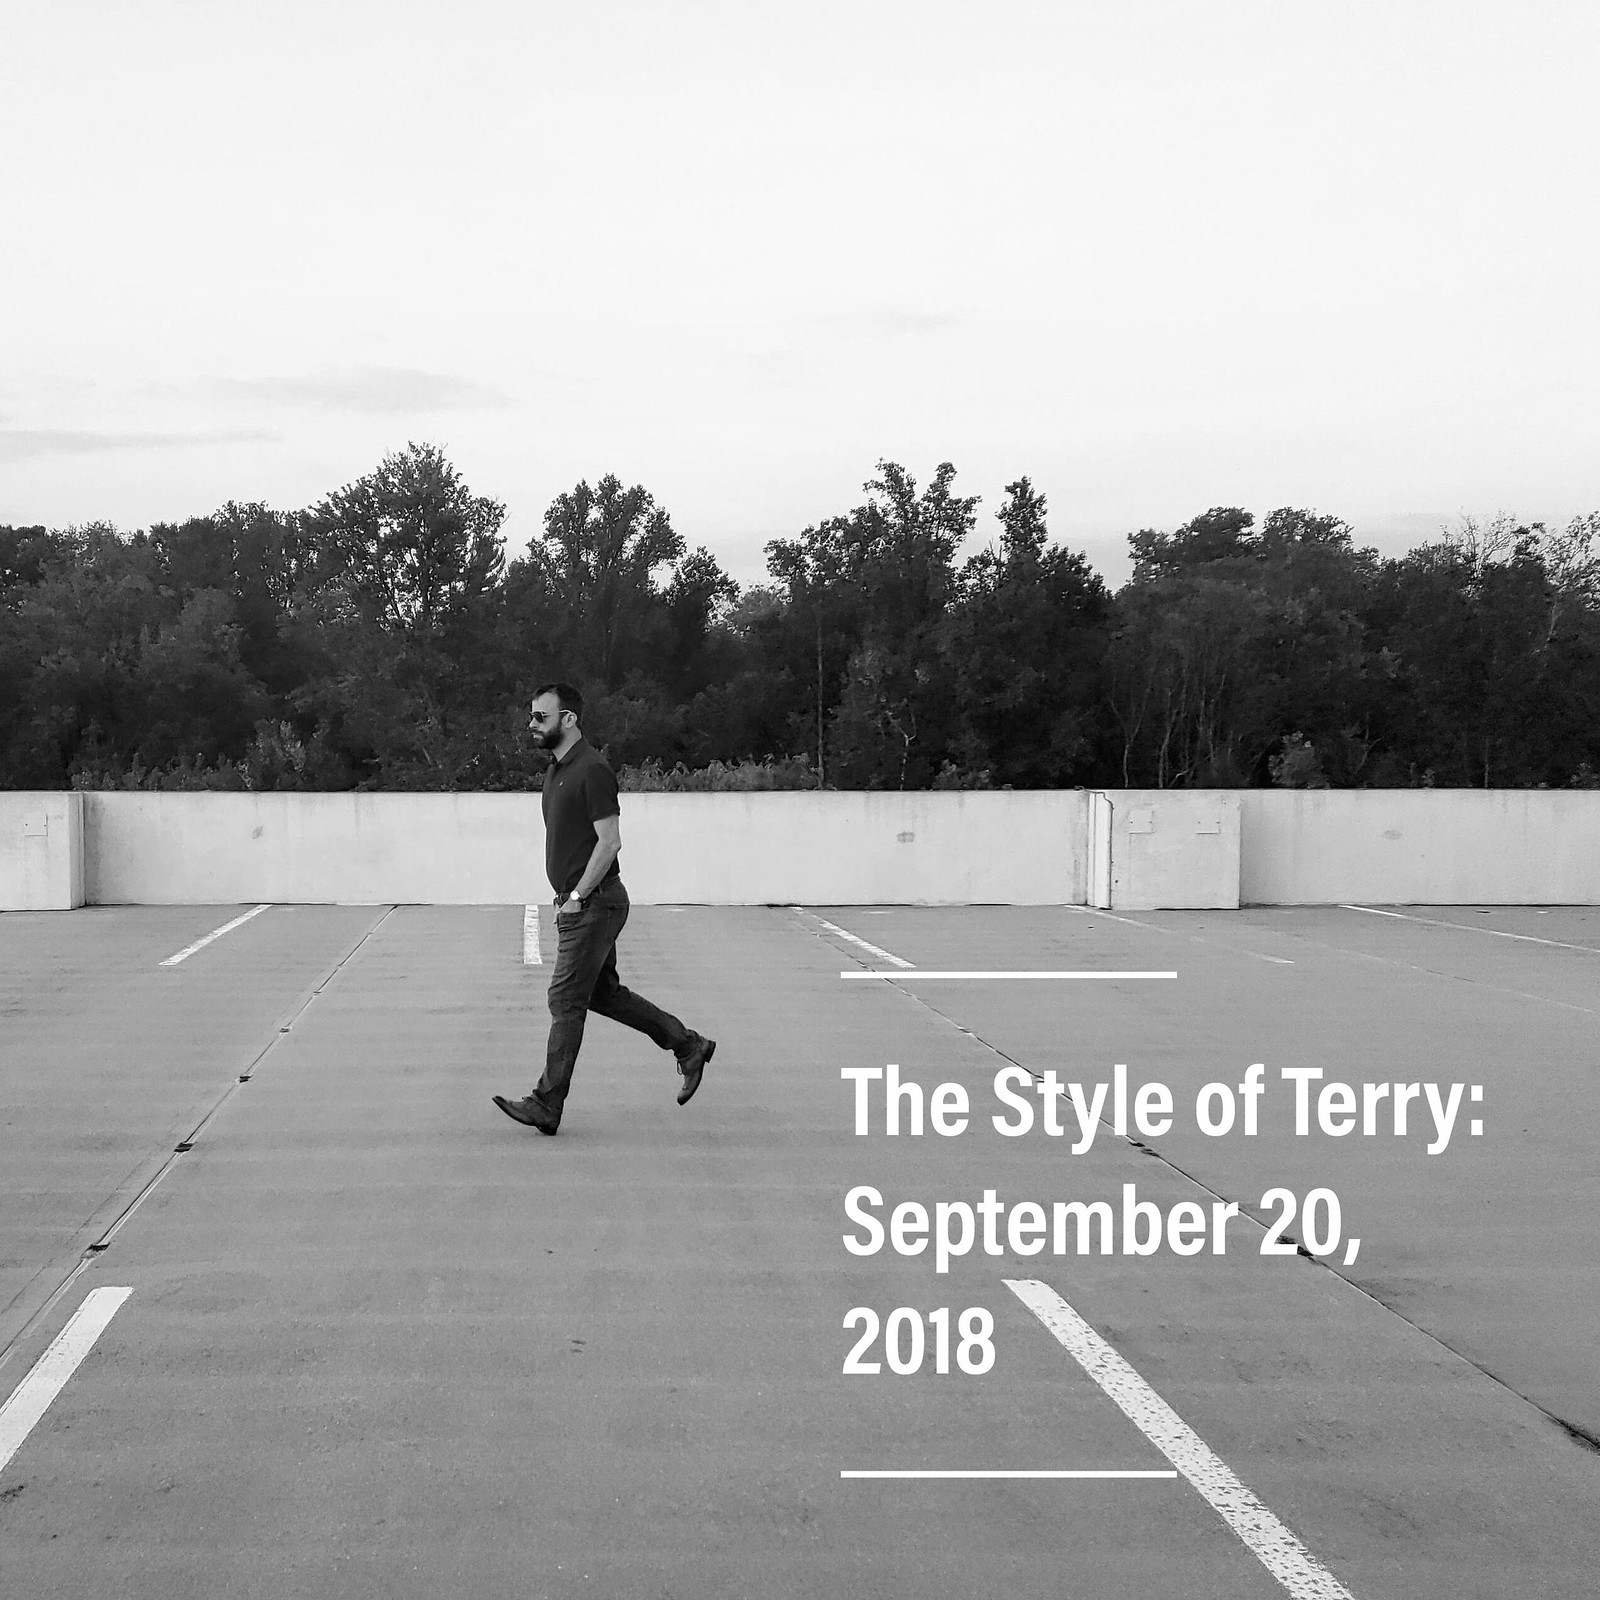 The Style of Terry: 9.20.18